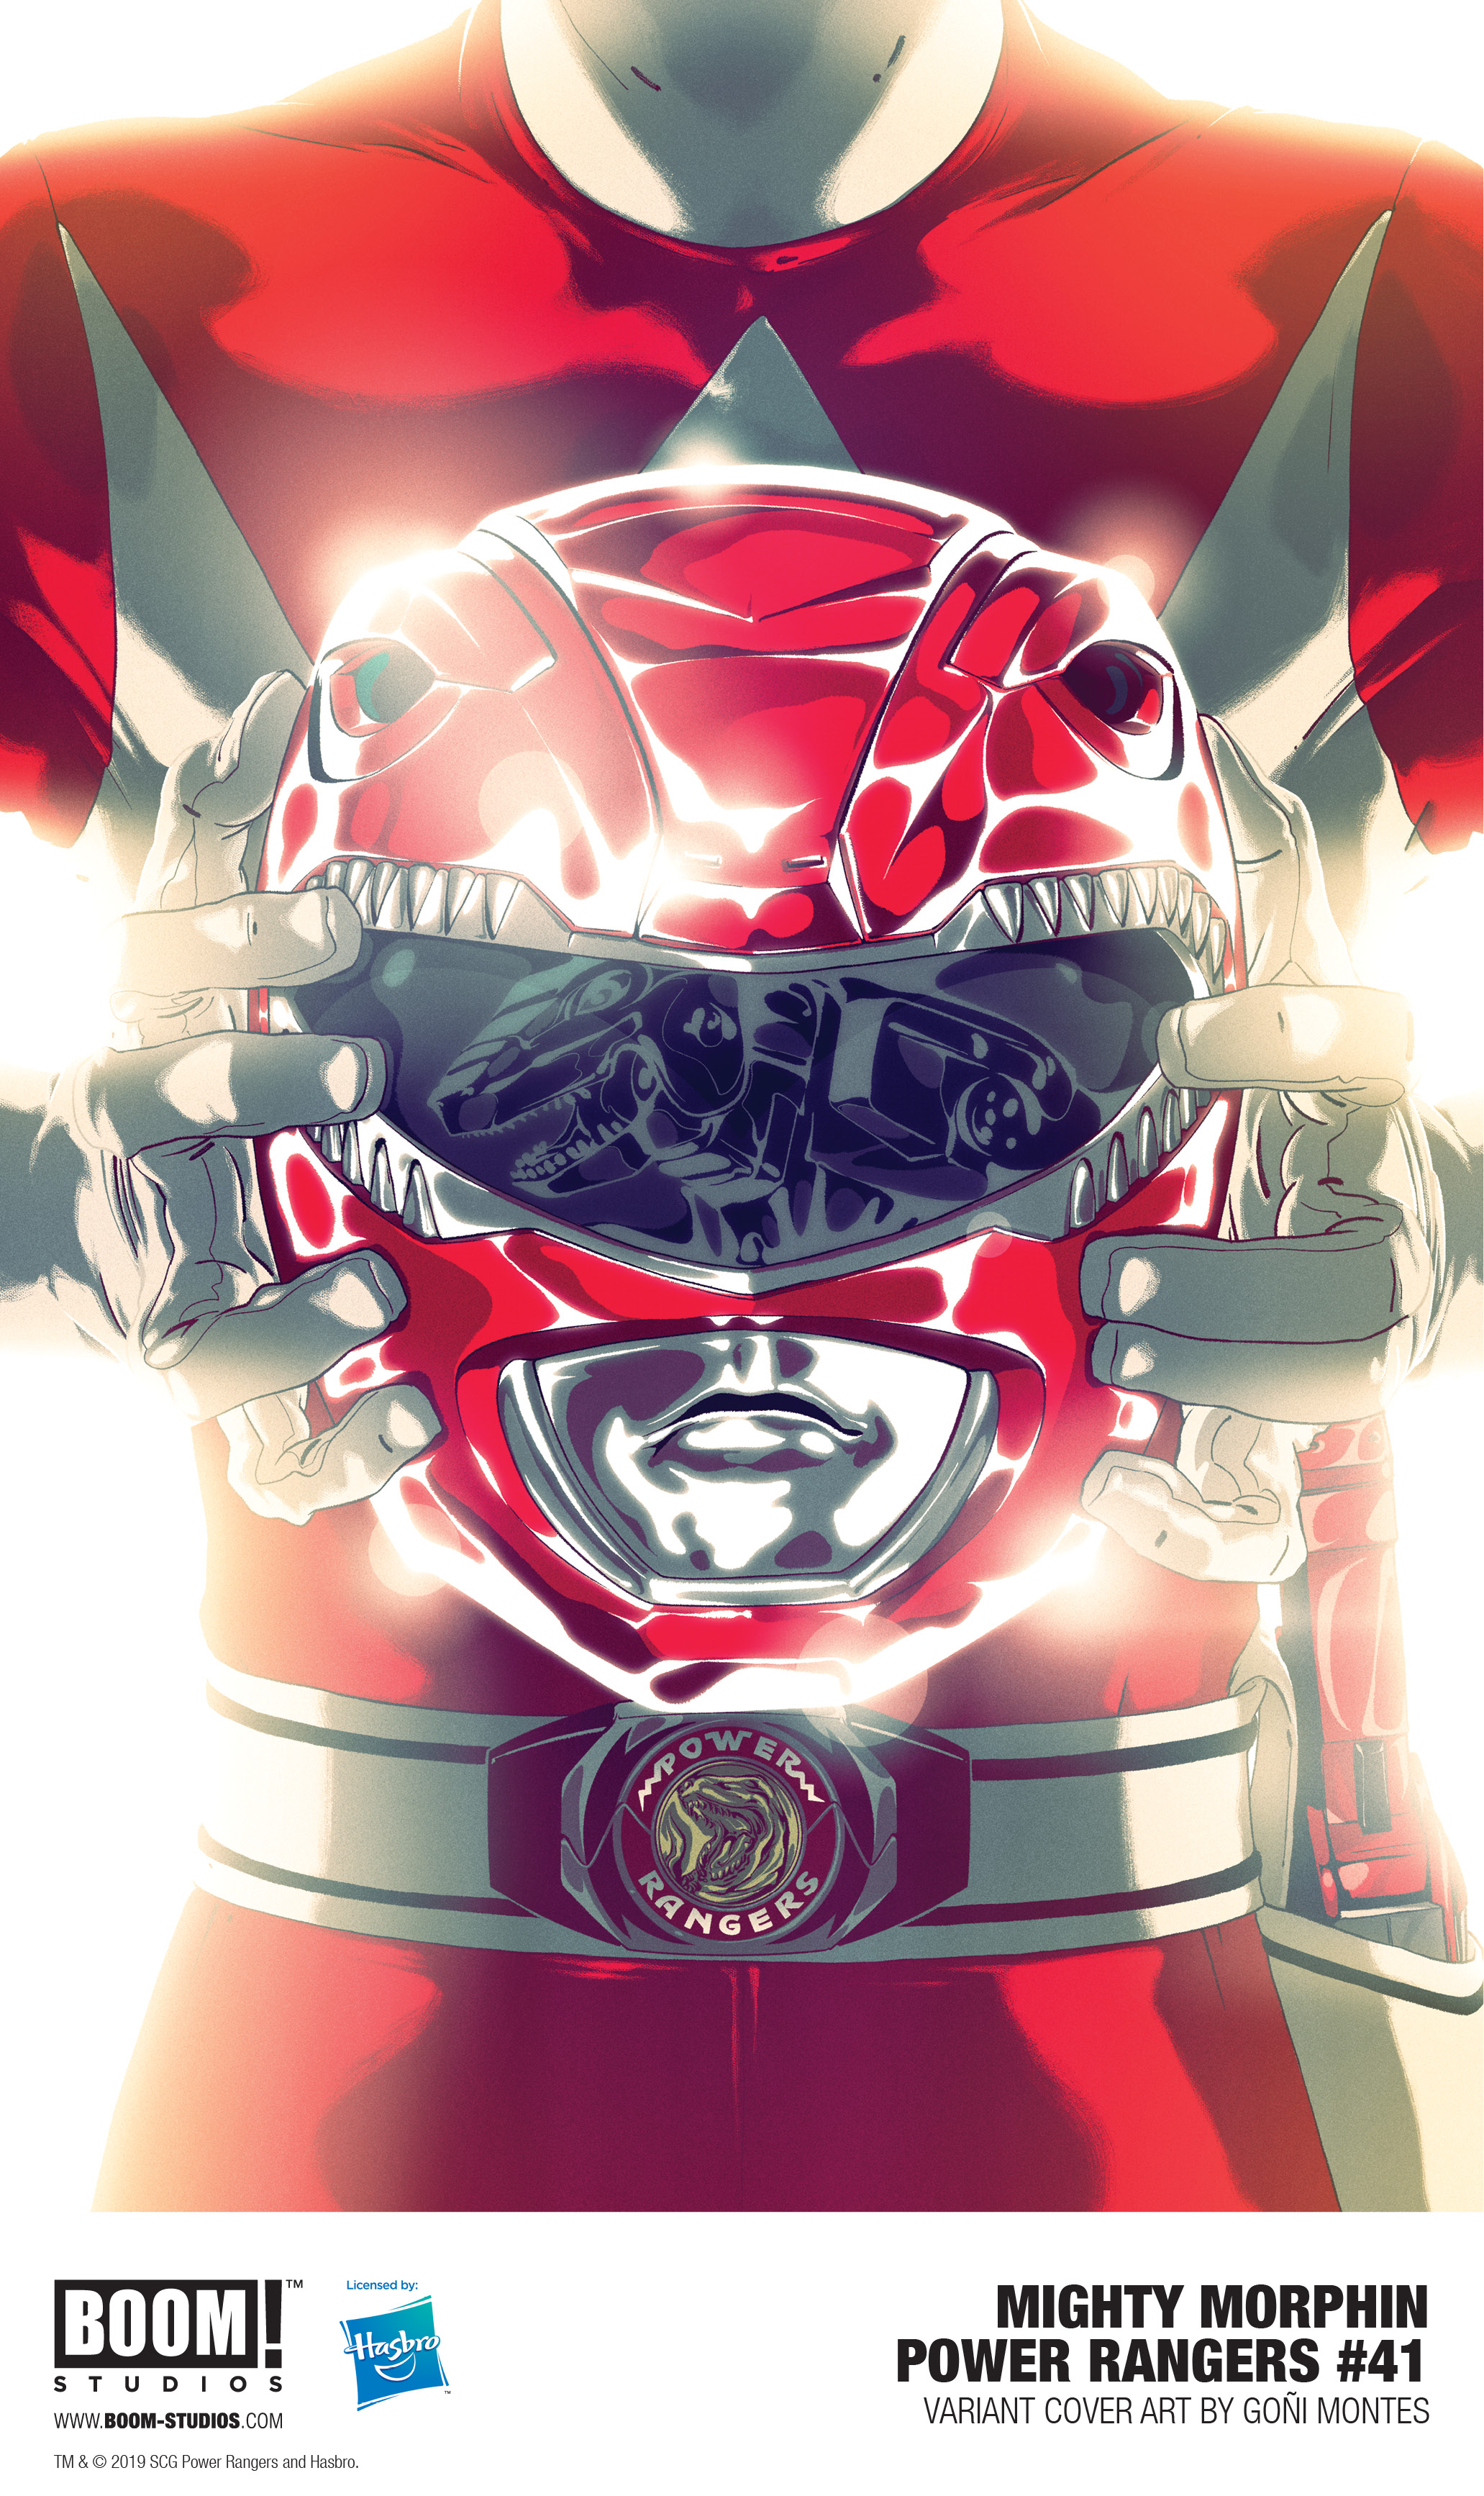 Power Rangers #41